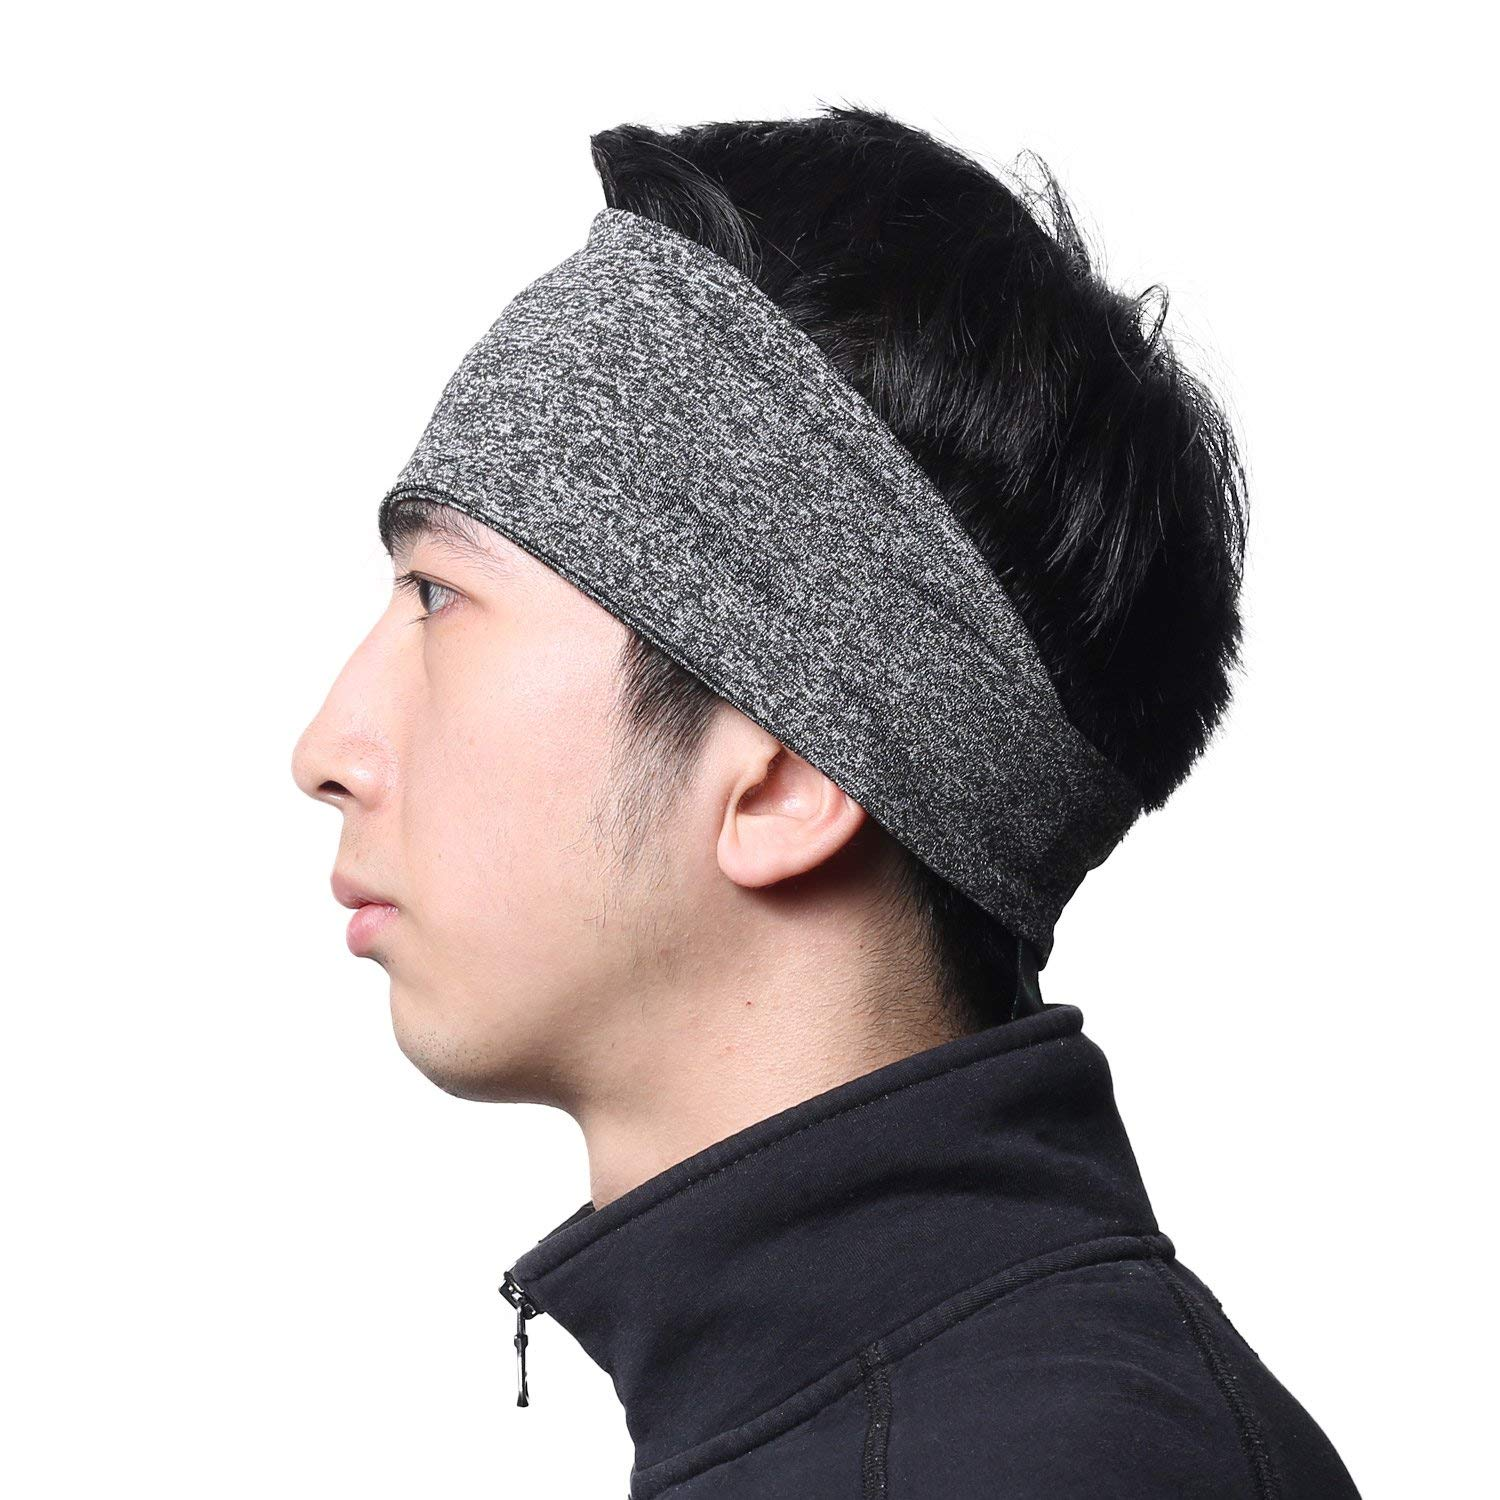 SUNMECI Headbands for Men Review